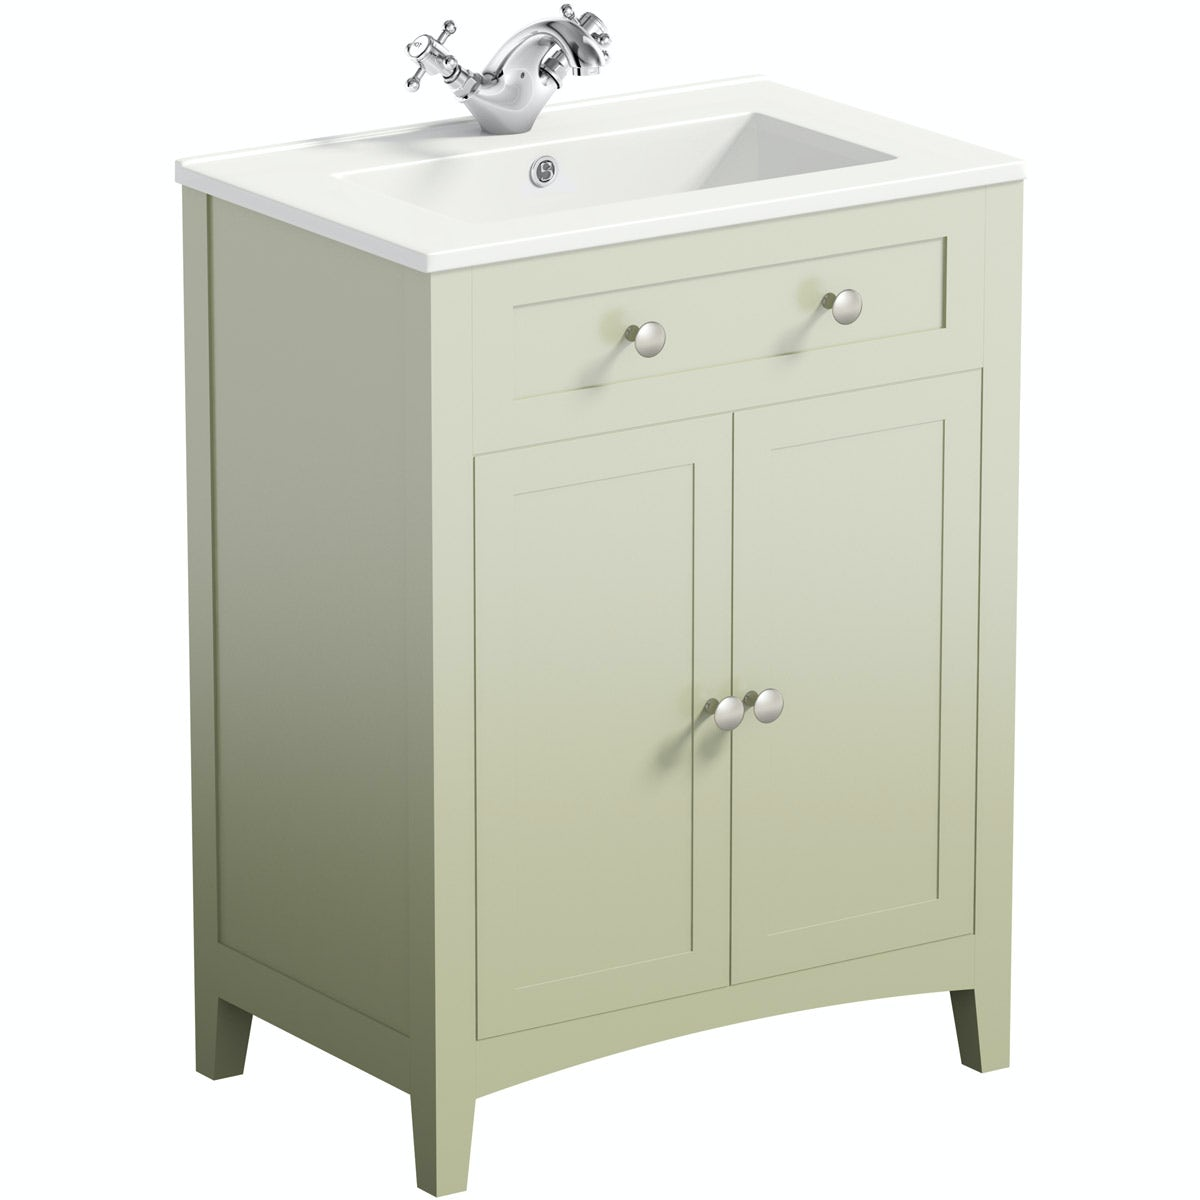 The Bath Co Camberley Sage Vanity Unit With Basin